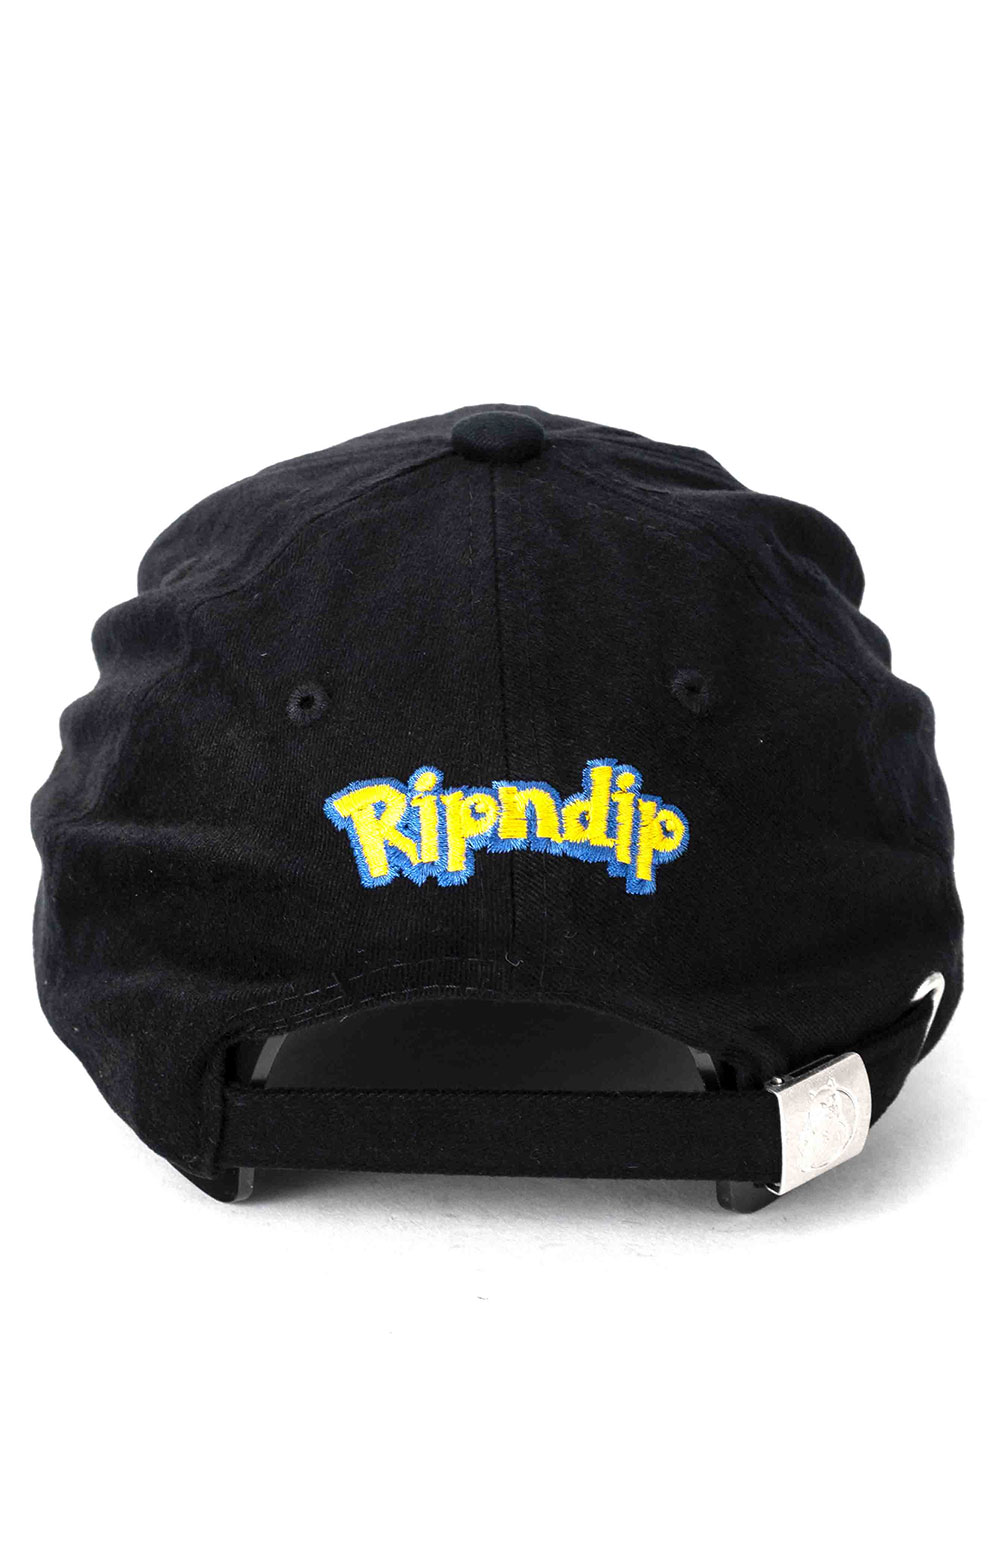 Catch Em All Strap-Back Hat - Black 3